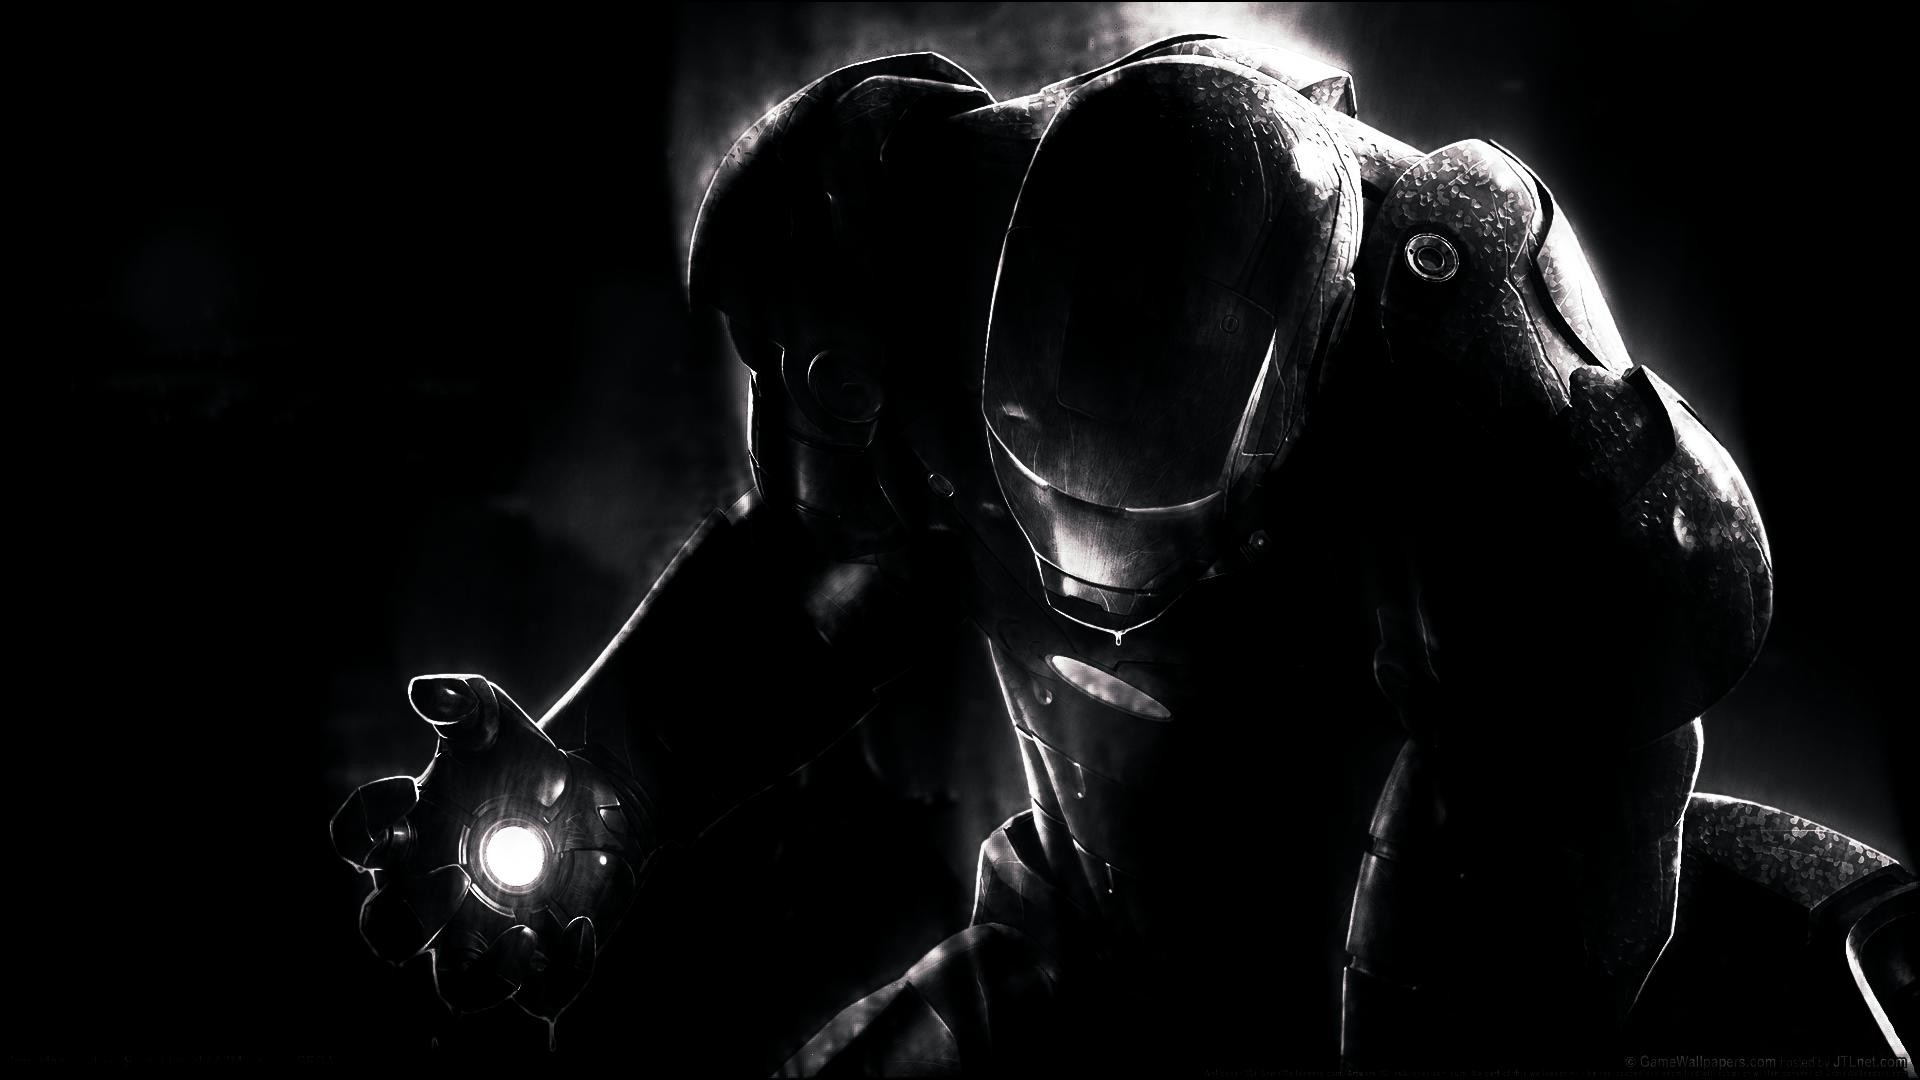 Hd Wallpapers 1080p Black And White